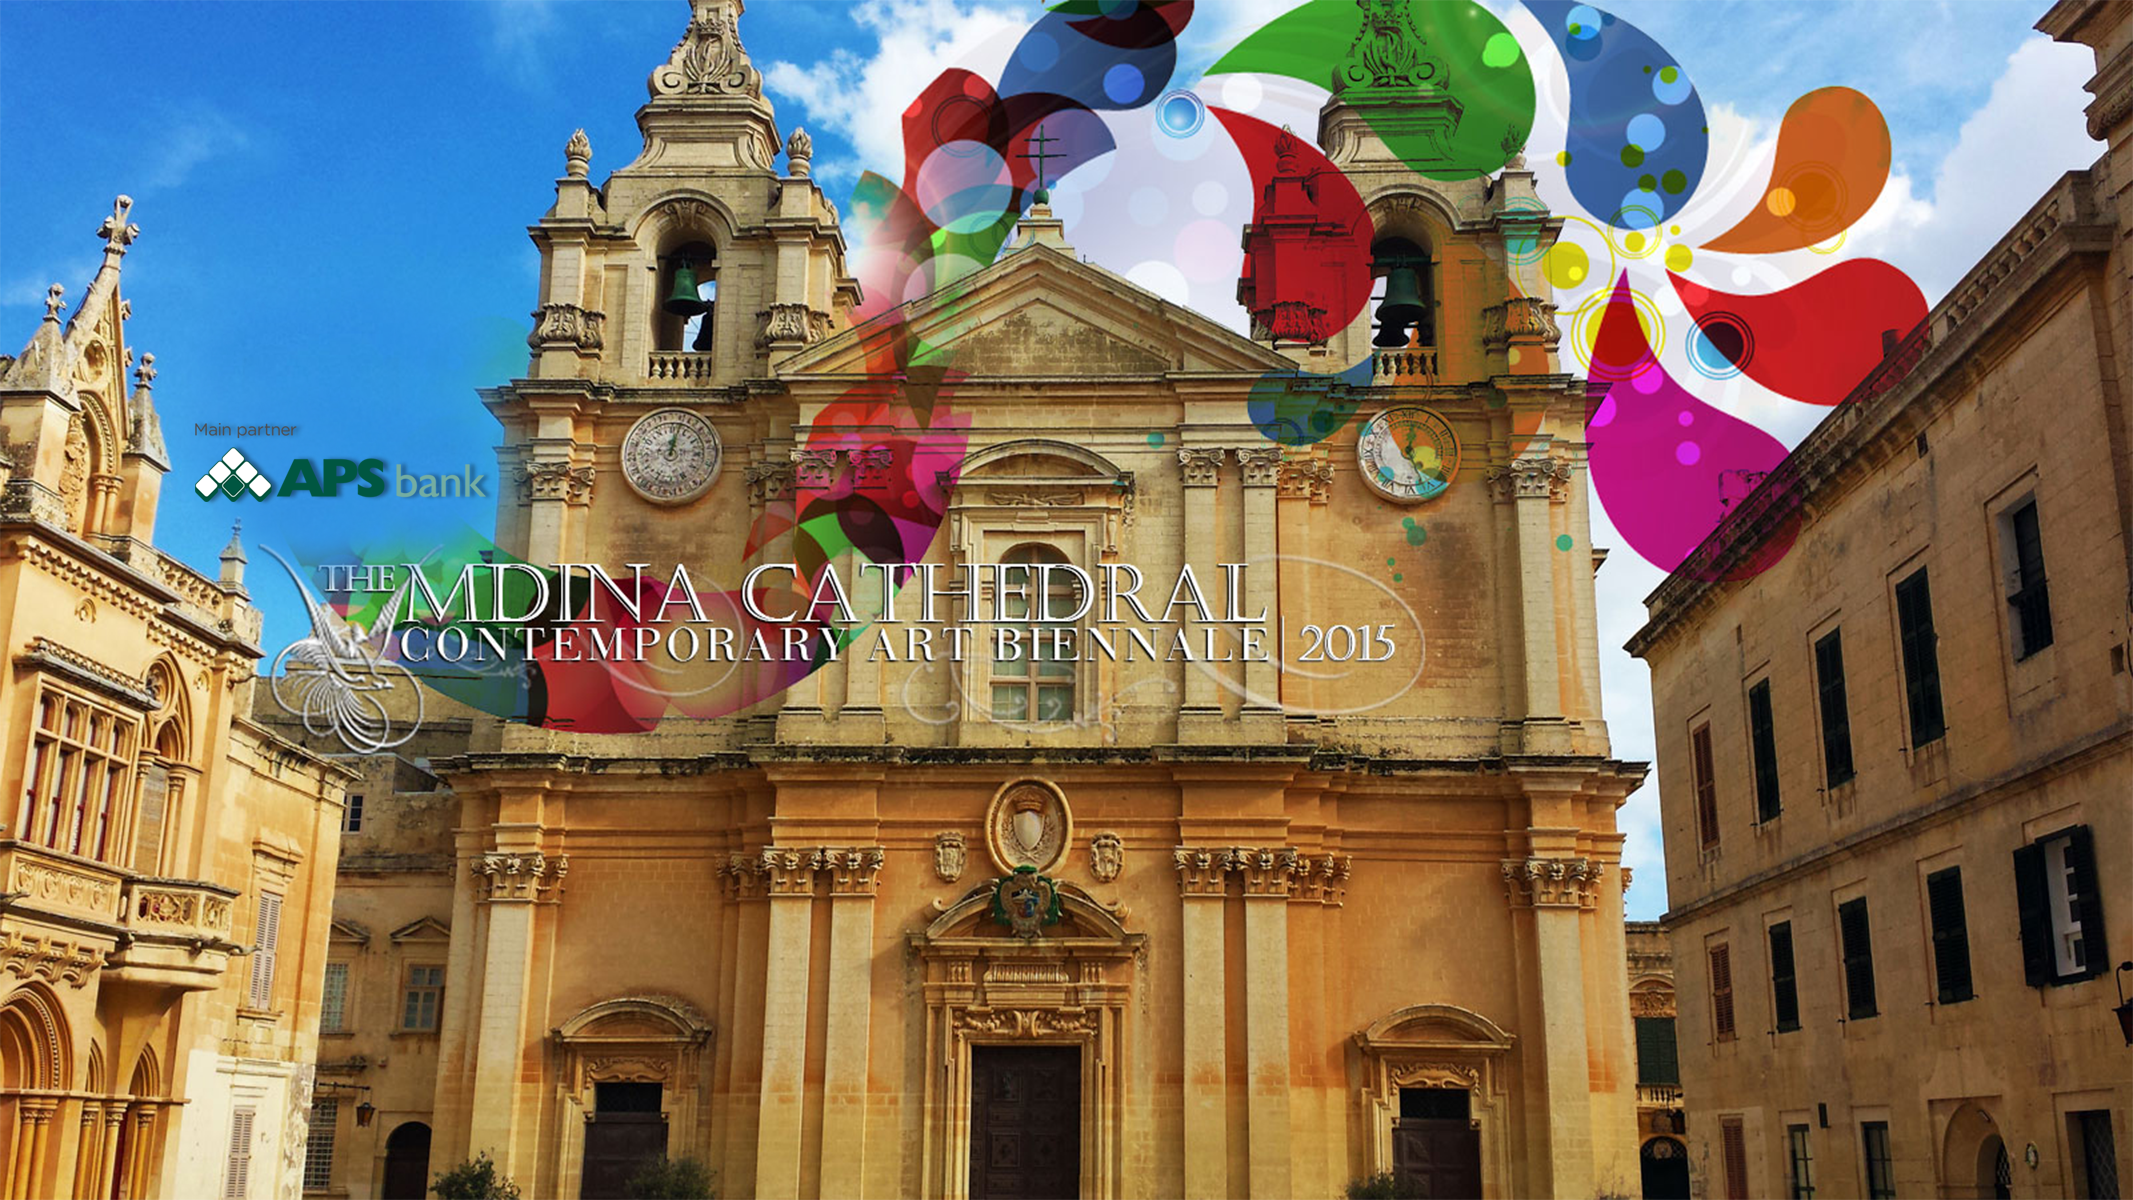 Mdina Cathedral Contemporary Art Biennale